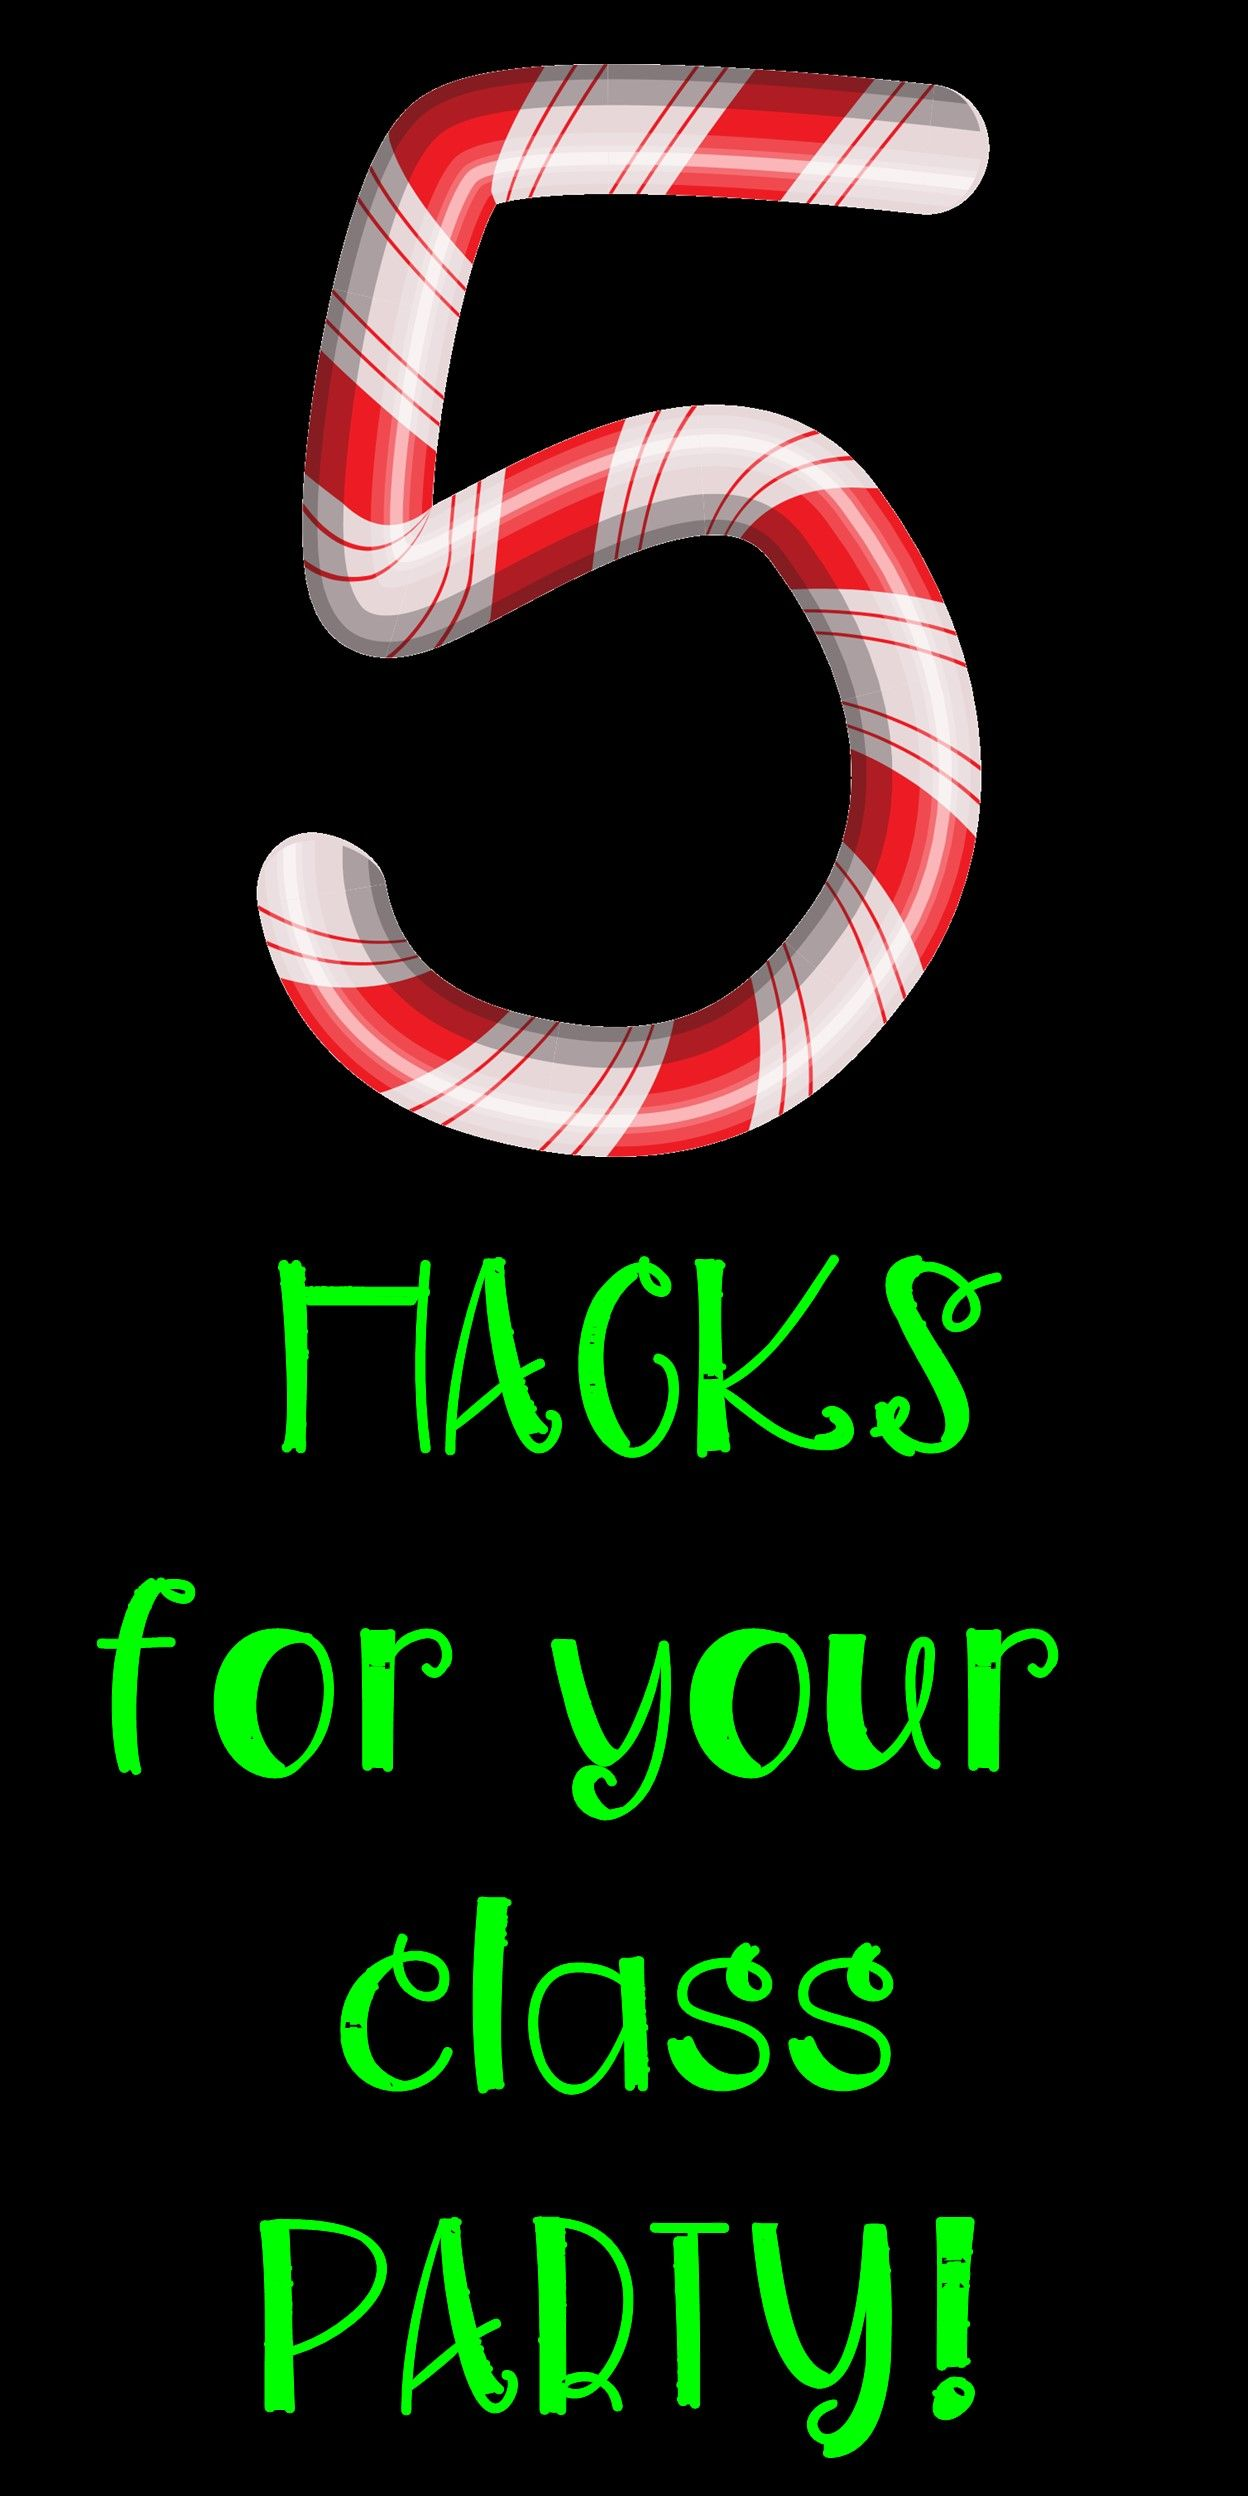 5 Hacks For Holiday Parties